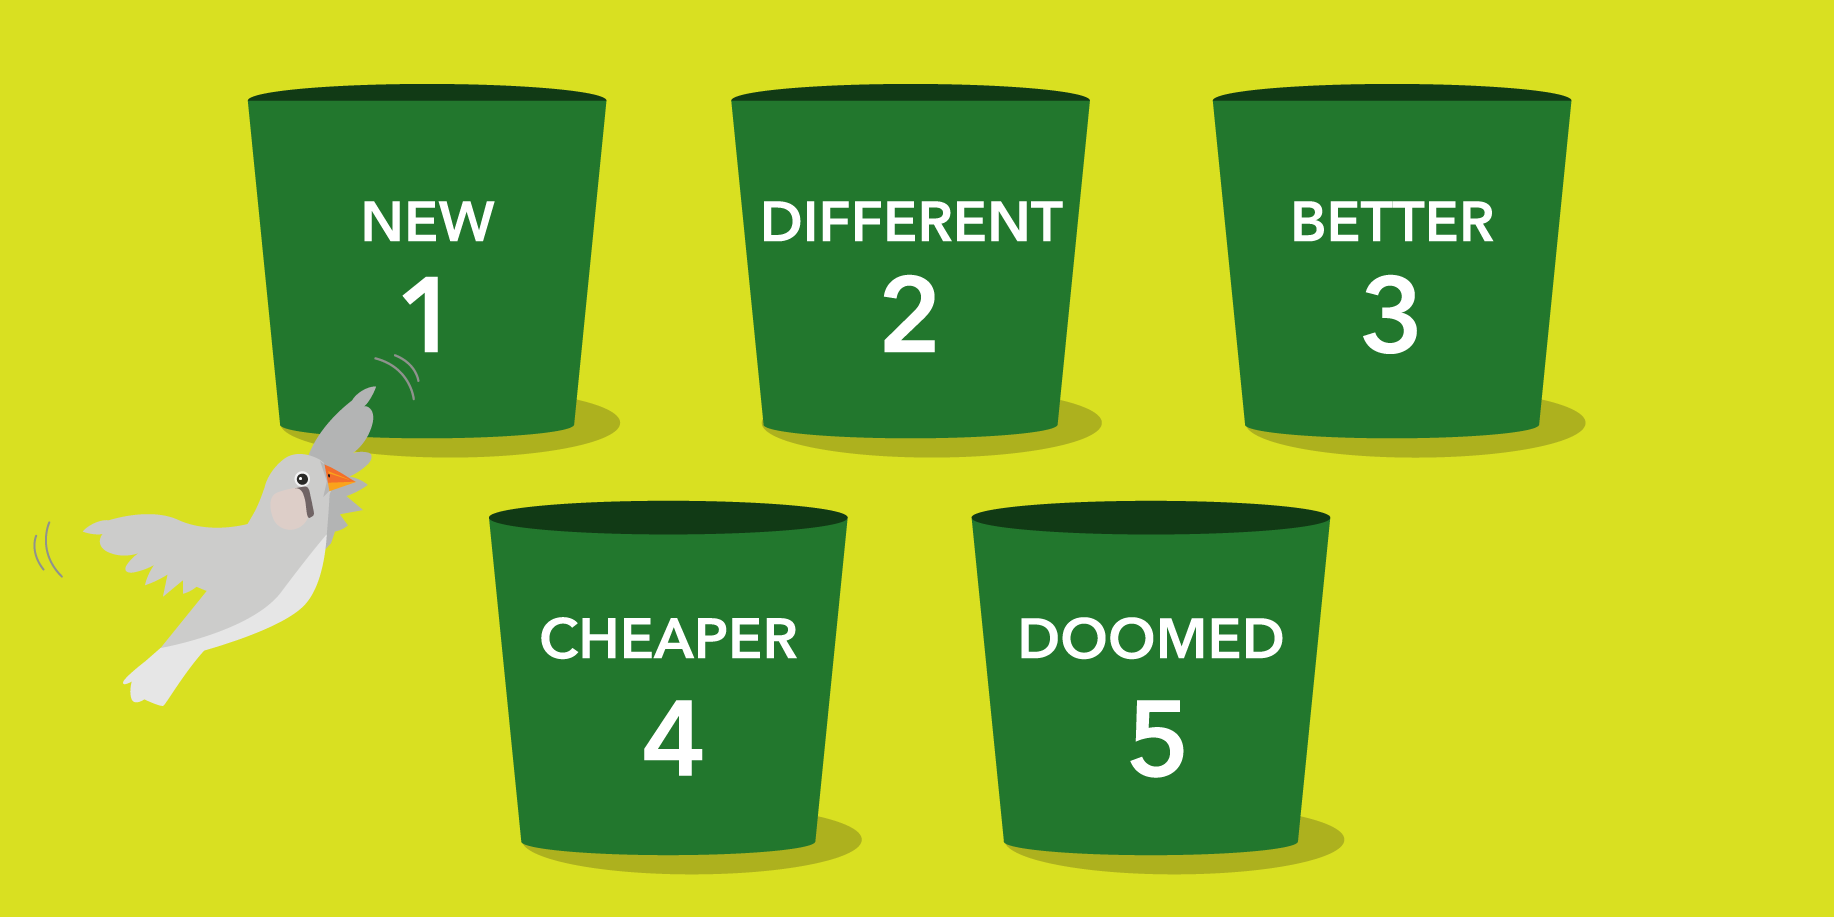 Your brand is in one of five buckets